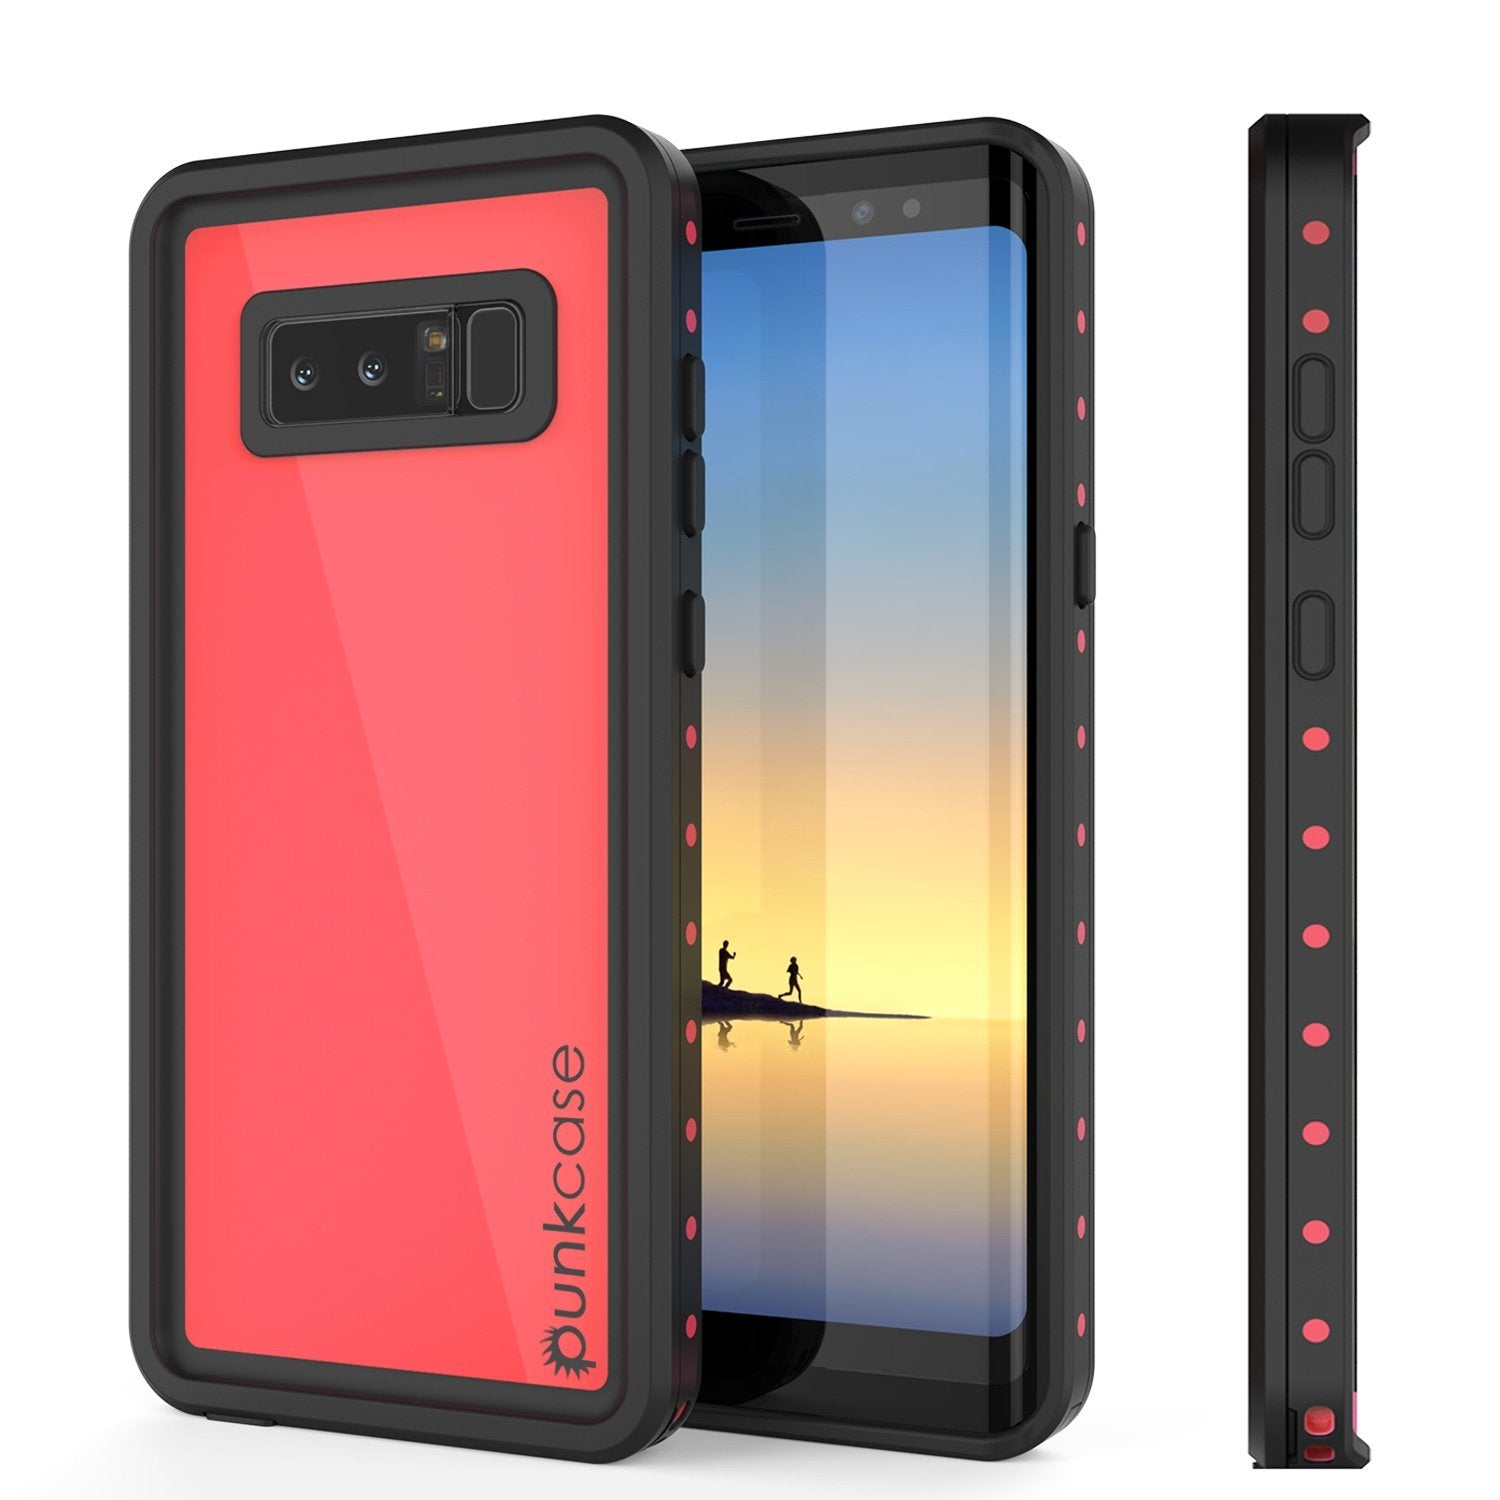 Galaxy Note 8 Waterproof Case PunkCase StudStar Pink Thin 6.6ft Underwater IP68 Shock/Snow Proof